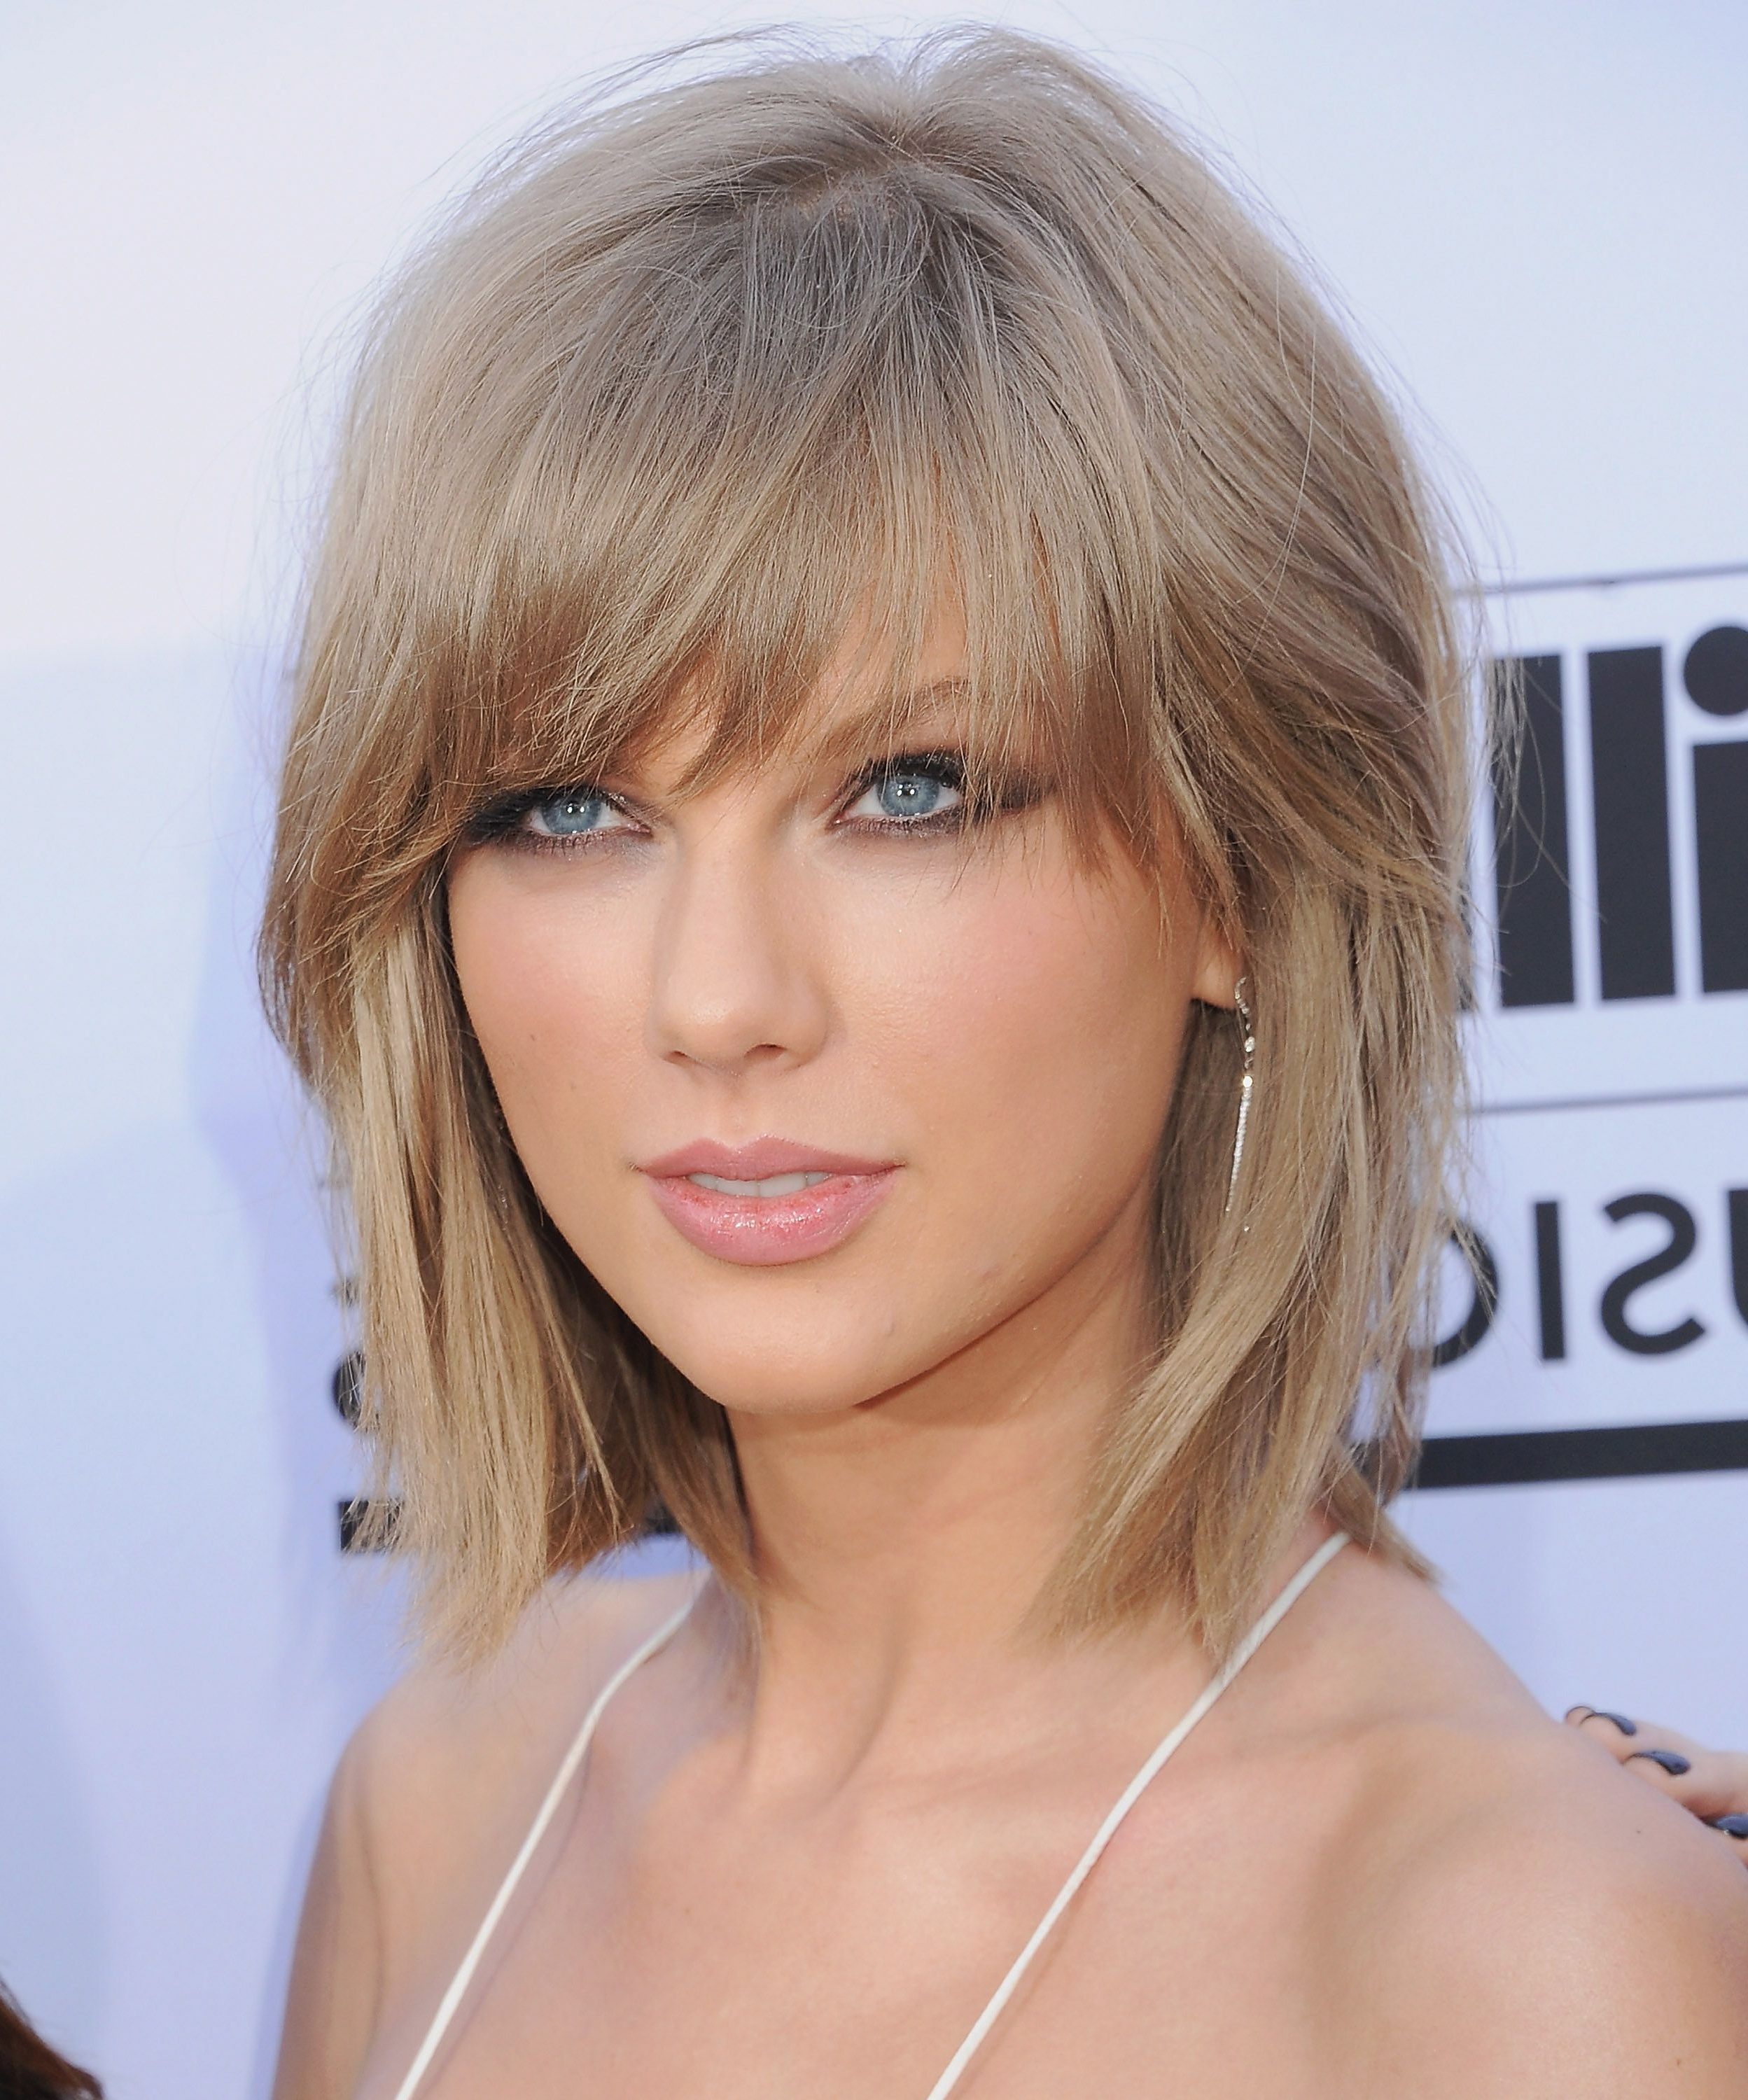 40 Best Layered Haircuts, Hairstyles & Trends For 2018 Throughout Short Haircuts With Bangs And Layers (View 3 of 25)